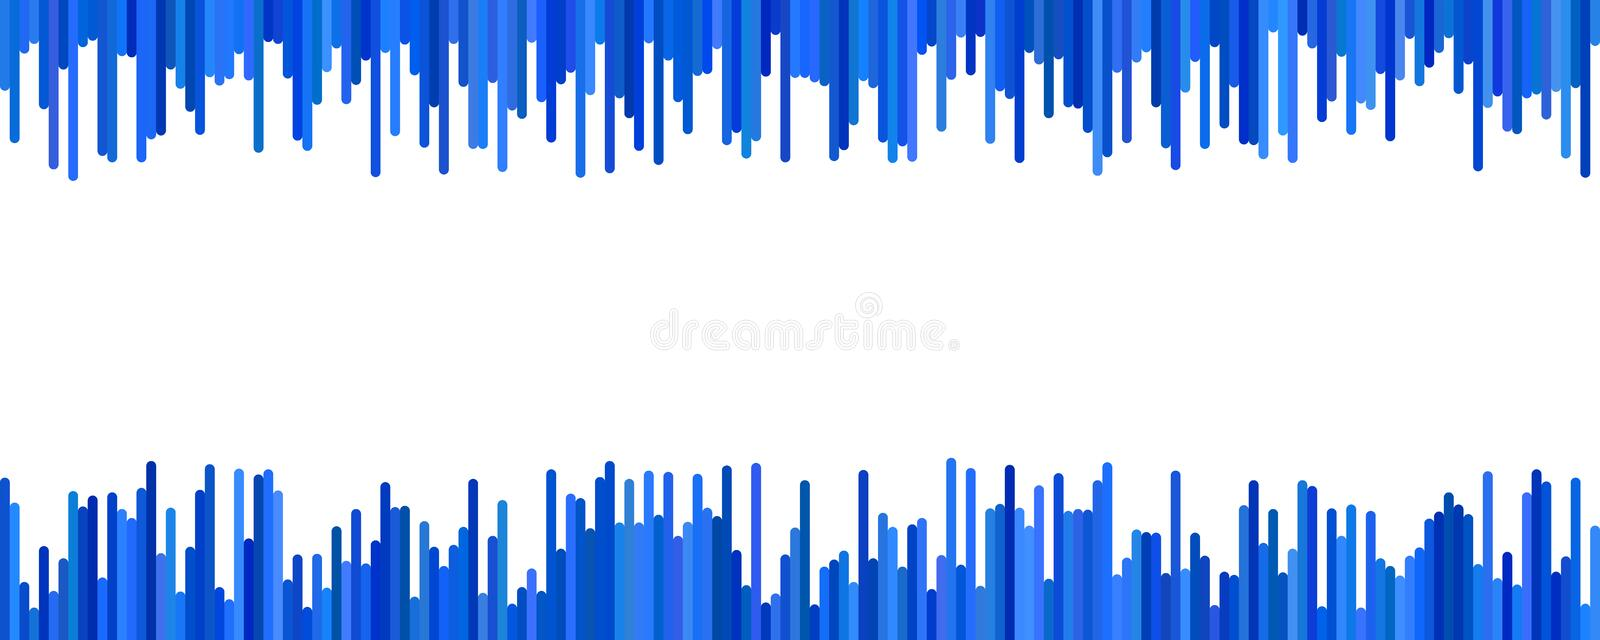 Modern banner background template design - horizontal vector graphic from vertical lines royalty free illustration